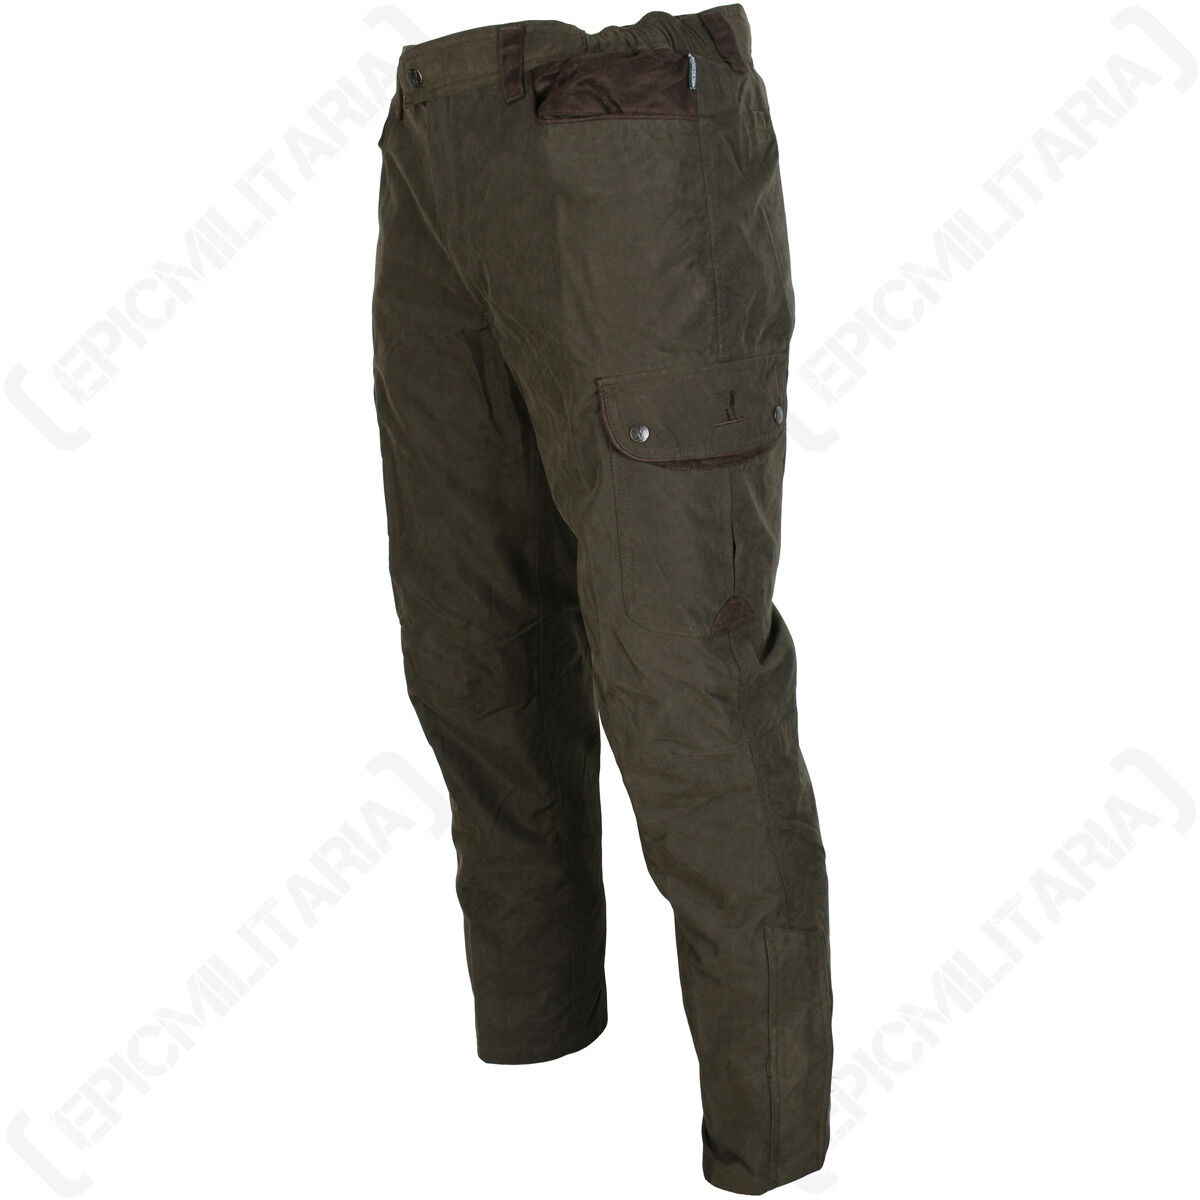 Percussion Normandie Tapered Hunting Trousers - Outdoor Waterproof Elastic New